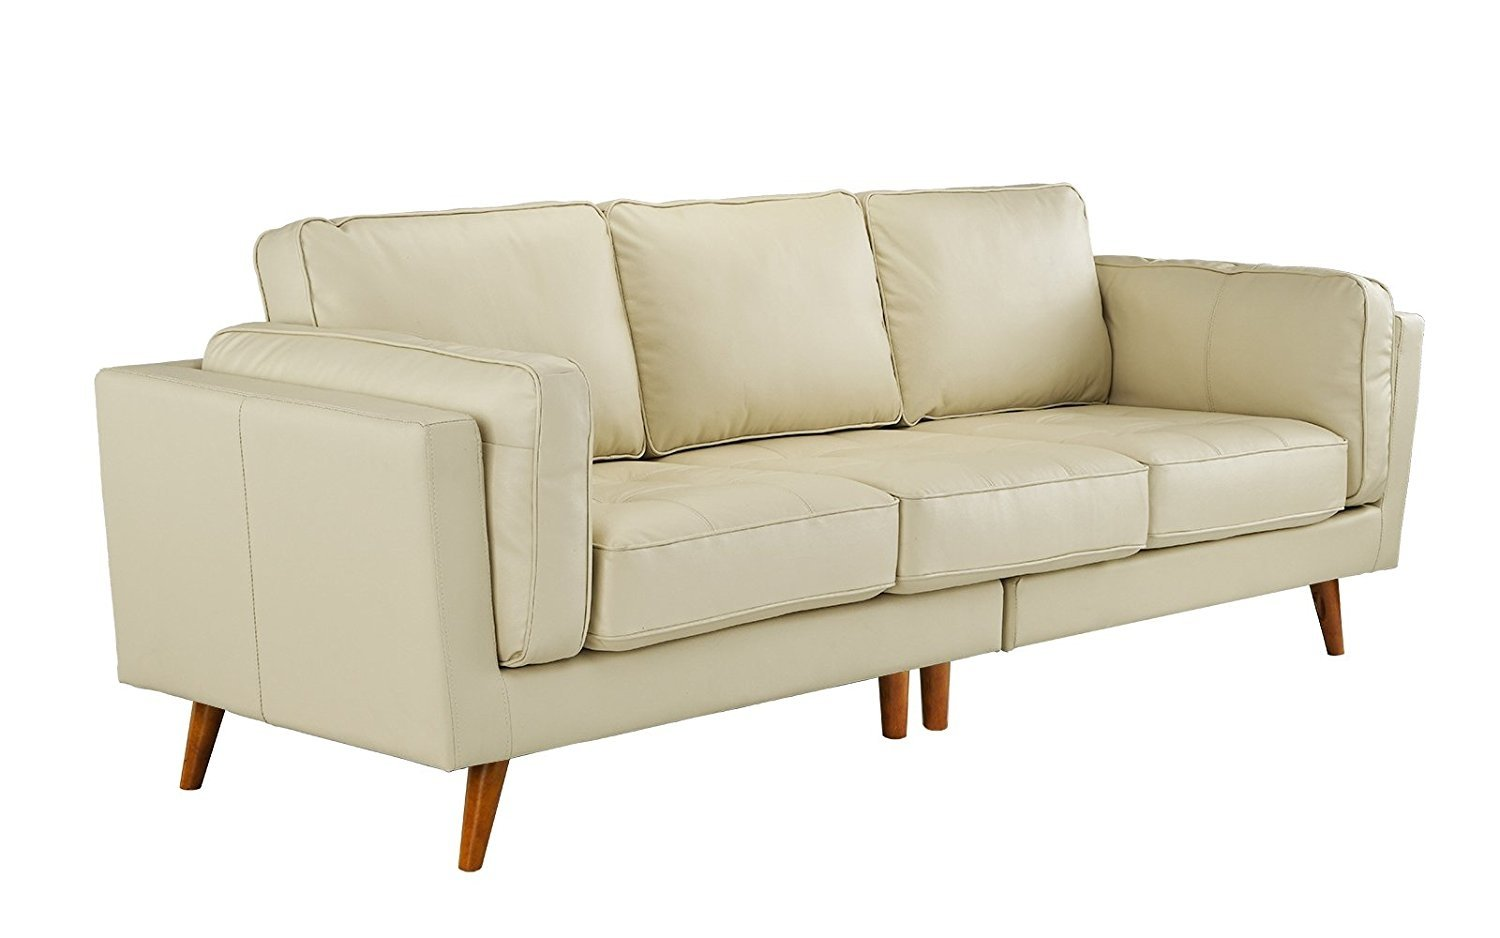 Details About Classic Mid Century Modern Couch Tufted Leather Sofa Wooden Legs Beige